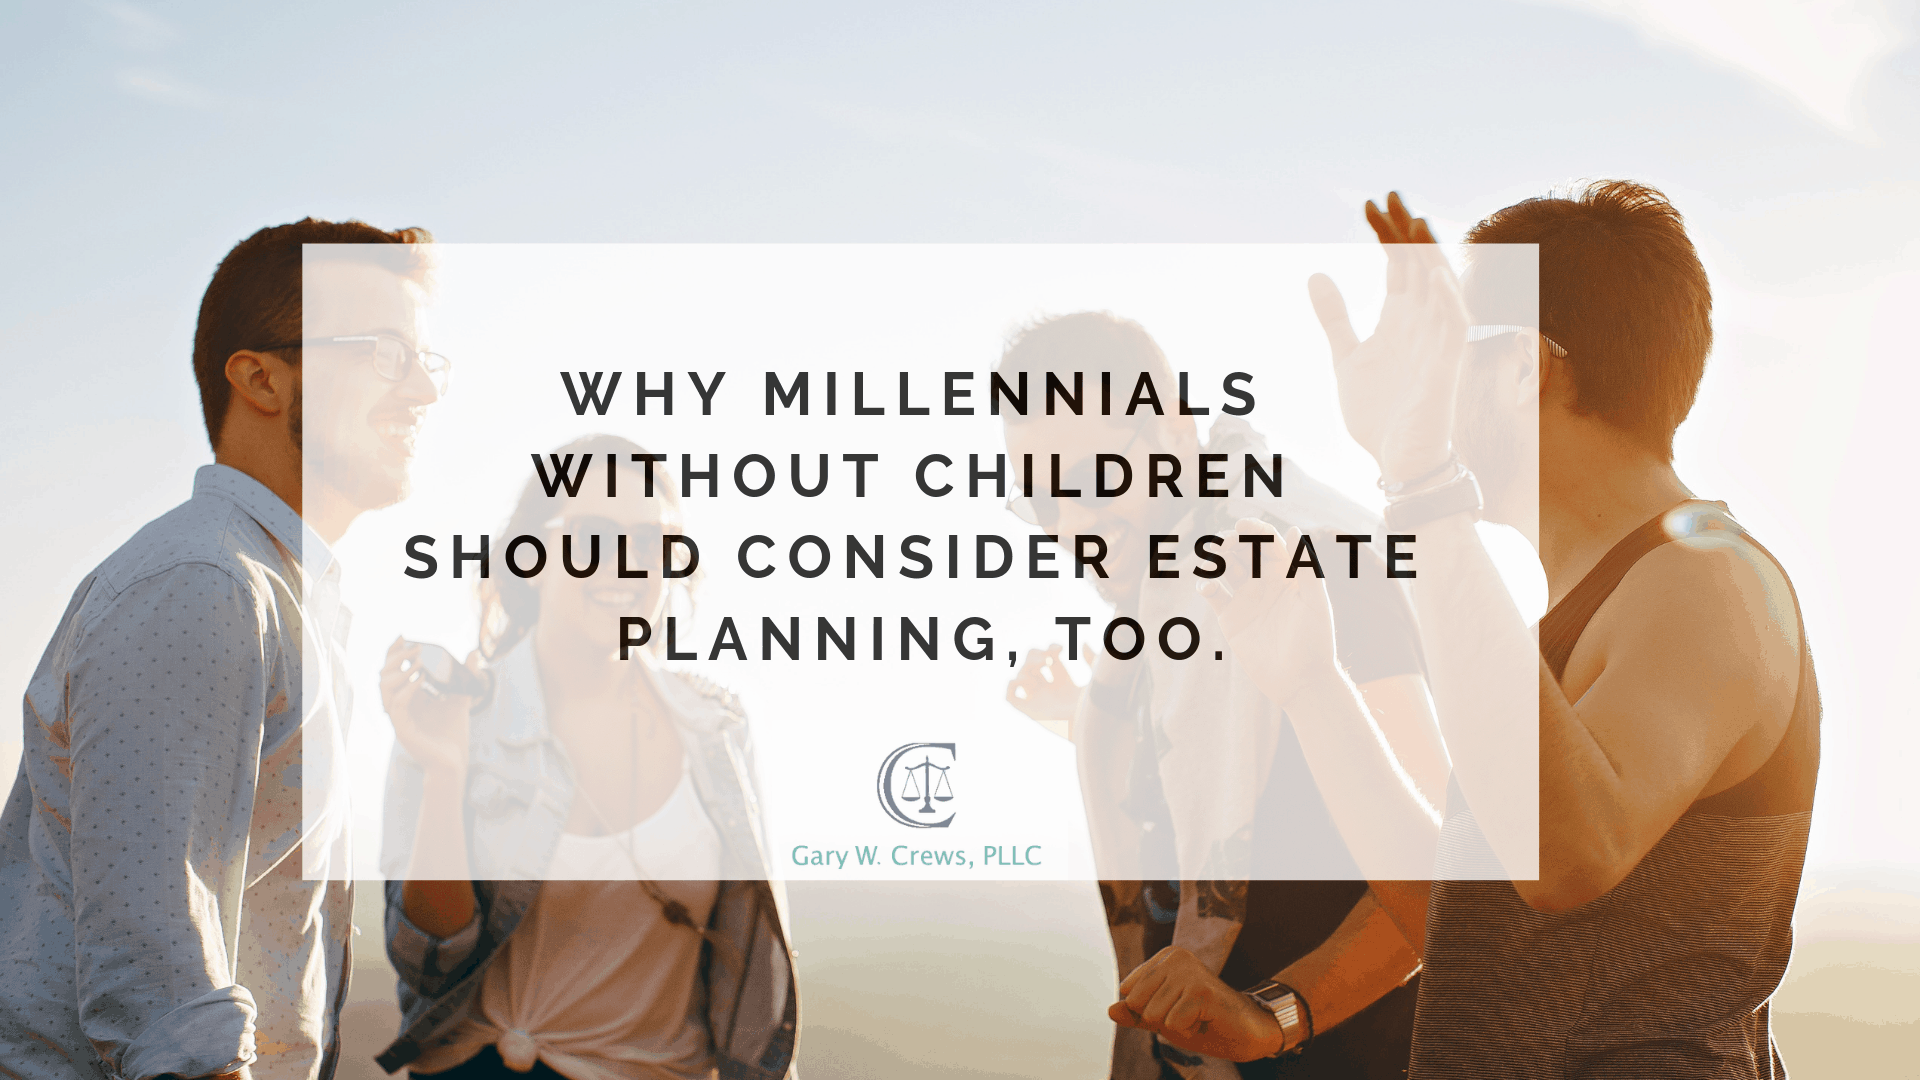 auto draft - Why Millienials Without Children Should Consider Estate Planning Too - Why Millennials without children should consider estate planning, too